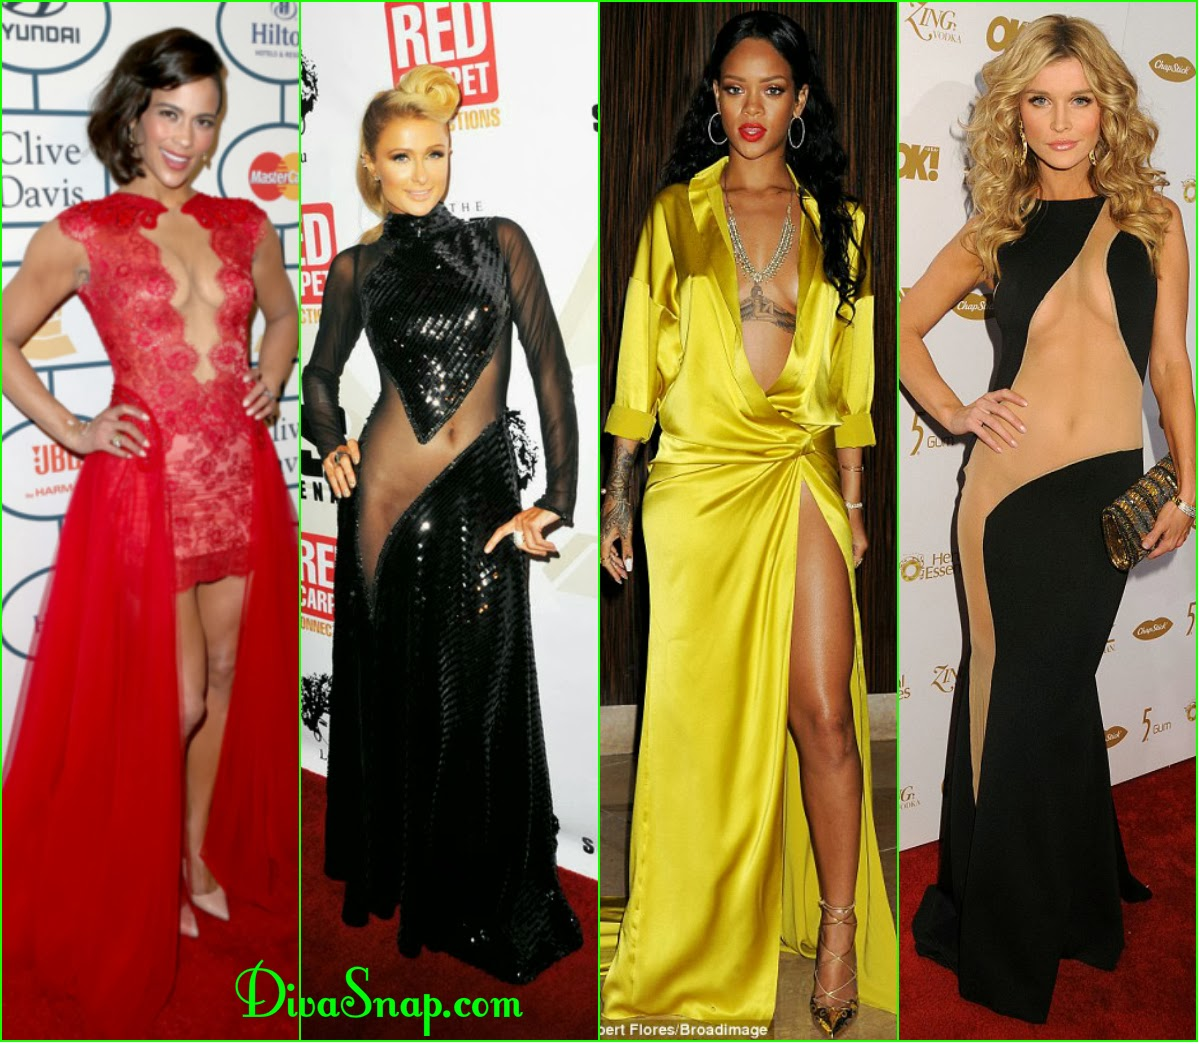 ALL THAT GRAMMY HOTNESS: PAULA PATTON, PARIS HILTON, RIHANNA & DAZZLE EYE-CATCHING LOOK - DivaSnap.com